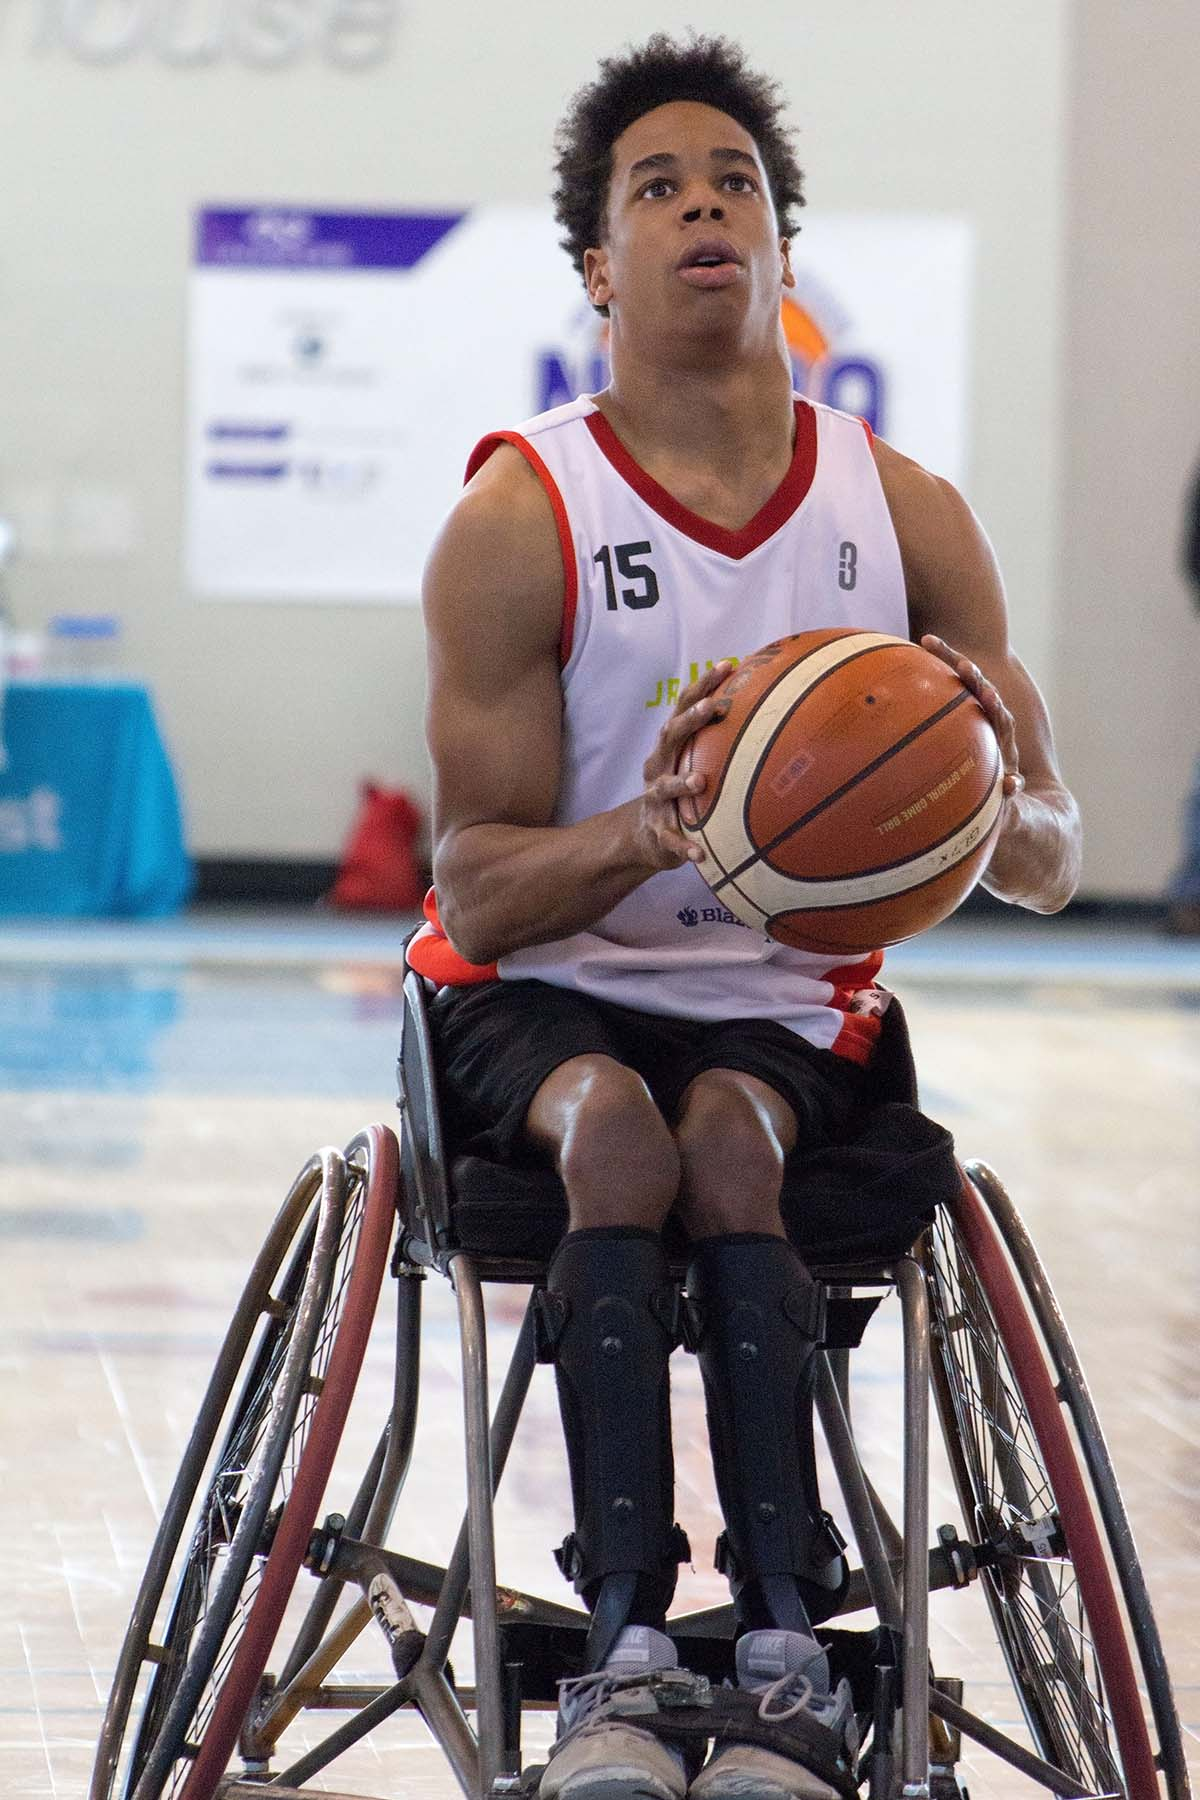 Atlanta Wheelchair Hawks Athlete Chooses Auburn University to further His Wheelchair Basketball Career